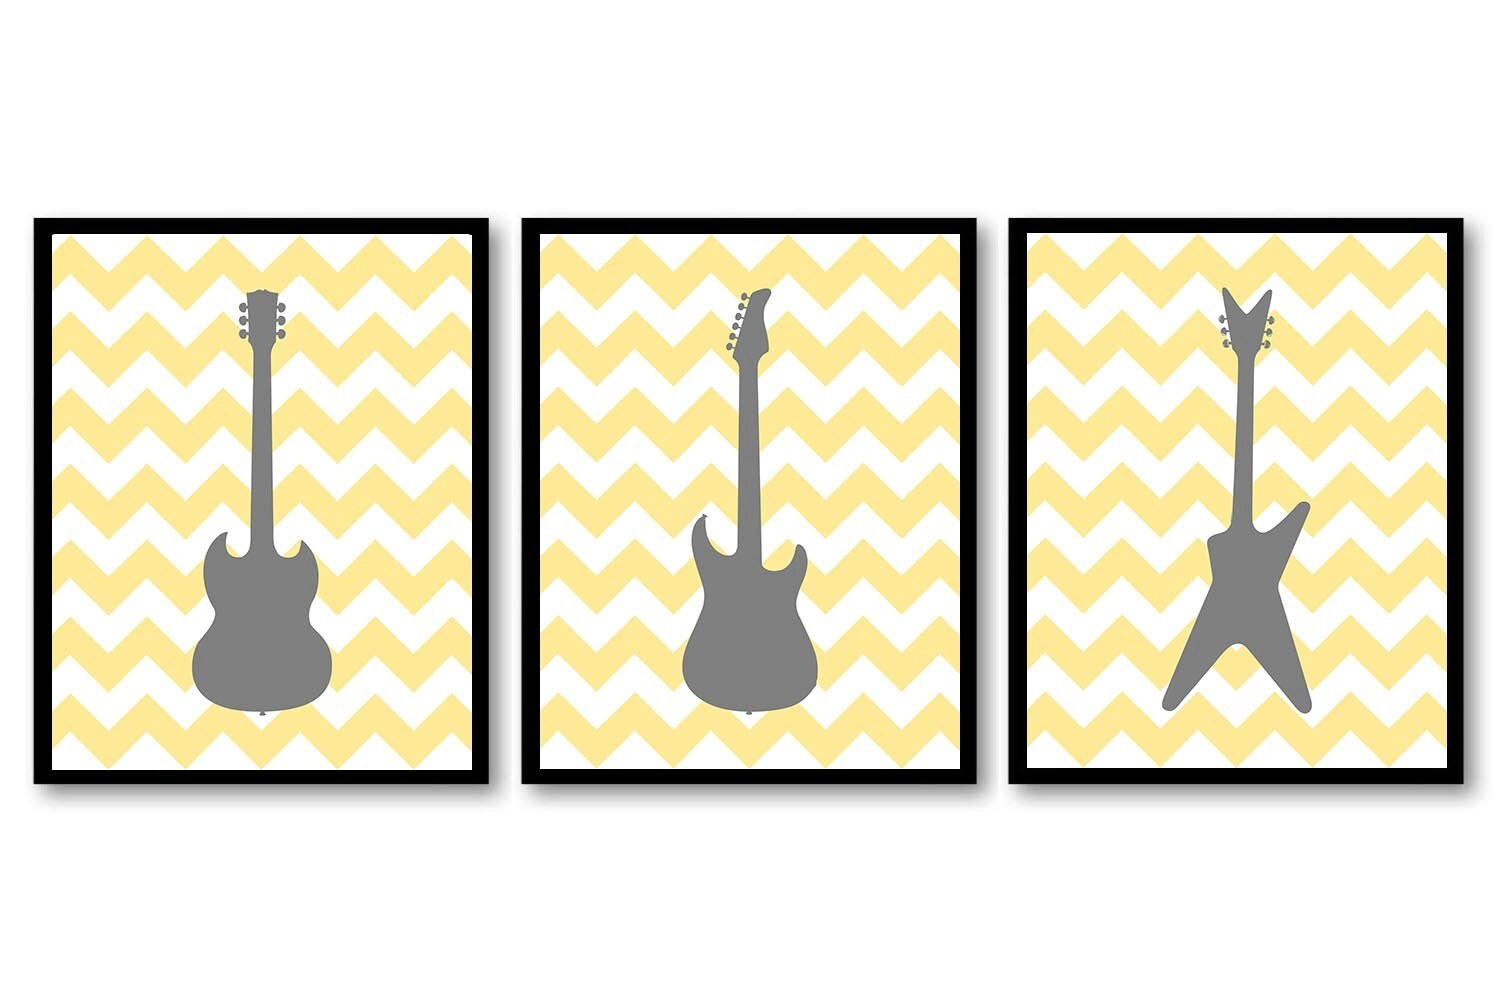 Electric Guitar Nursery Art Nursery Prints Set of 3 Prints Grey Gray ...